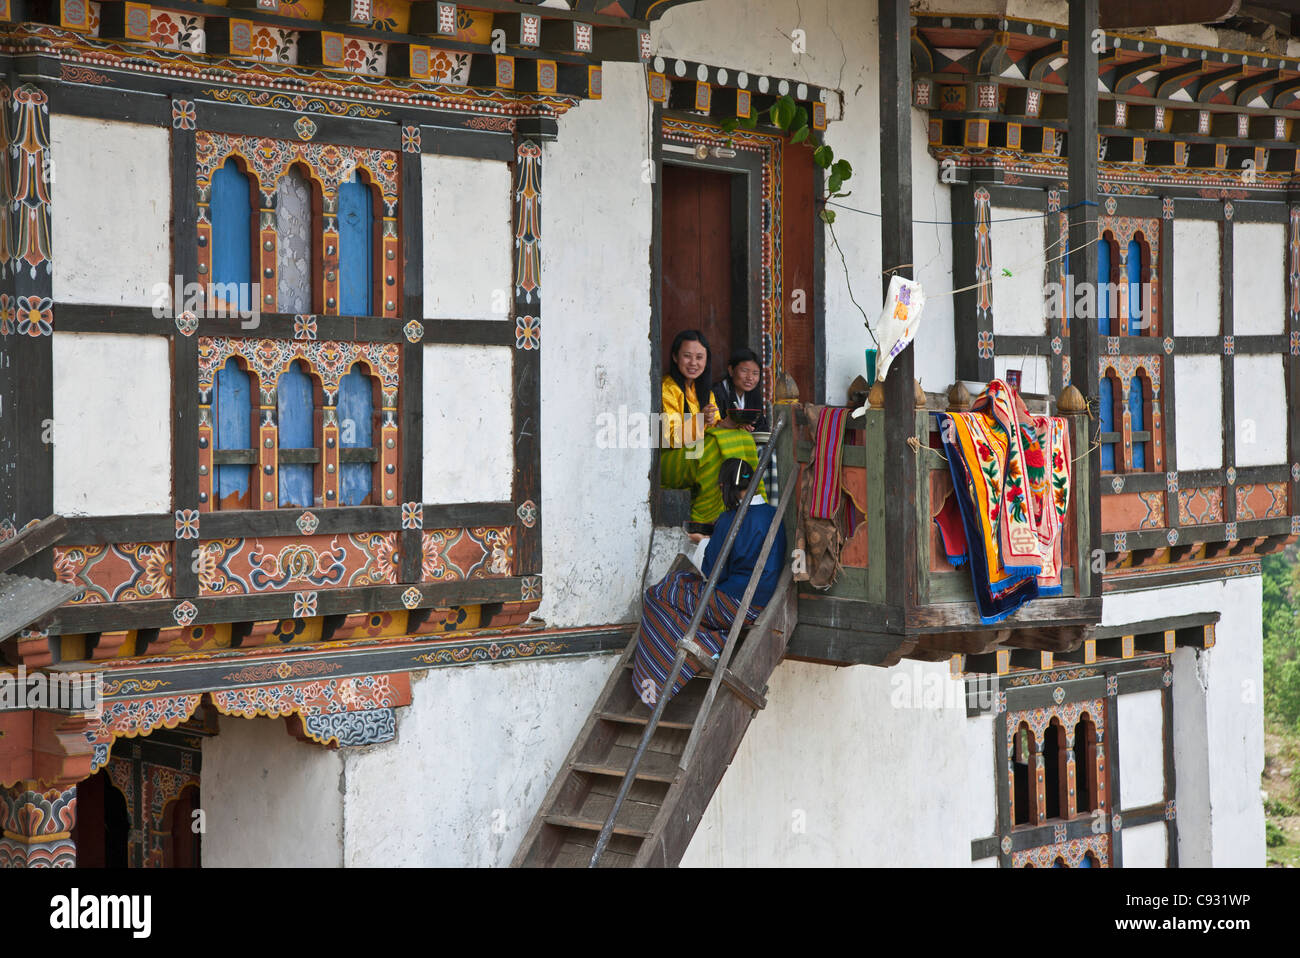 A family eats their mid-day meal on the porch of their traditional home outside Mongar. - Stock Image